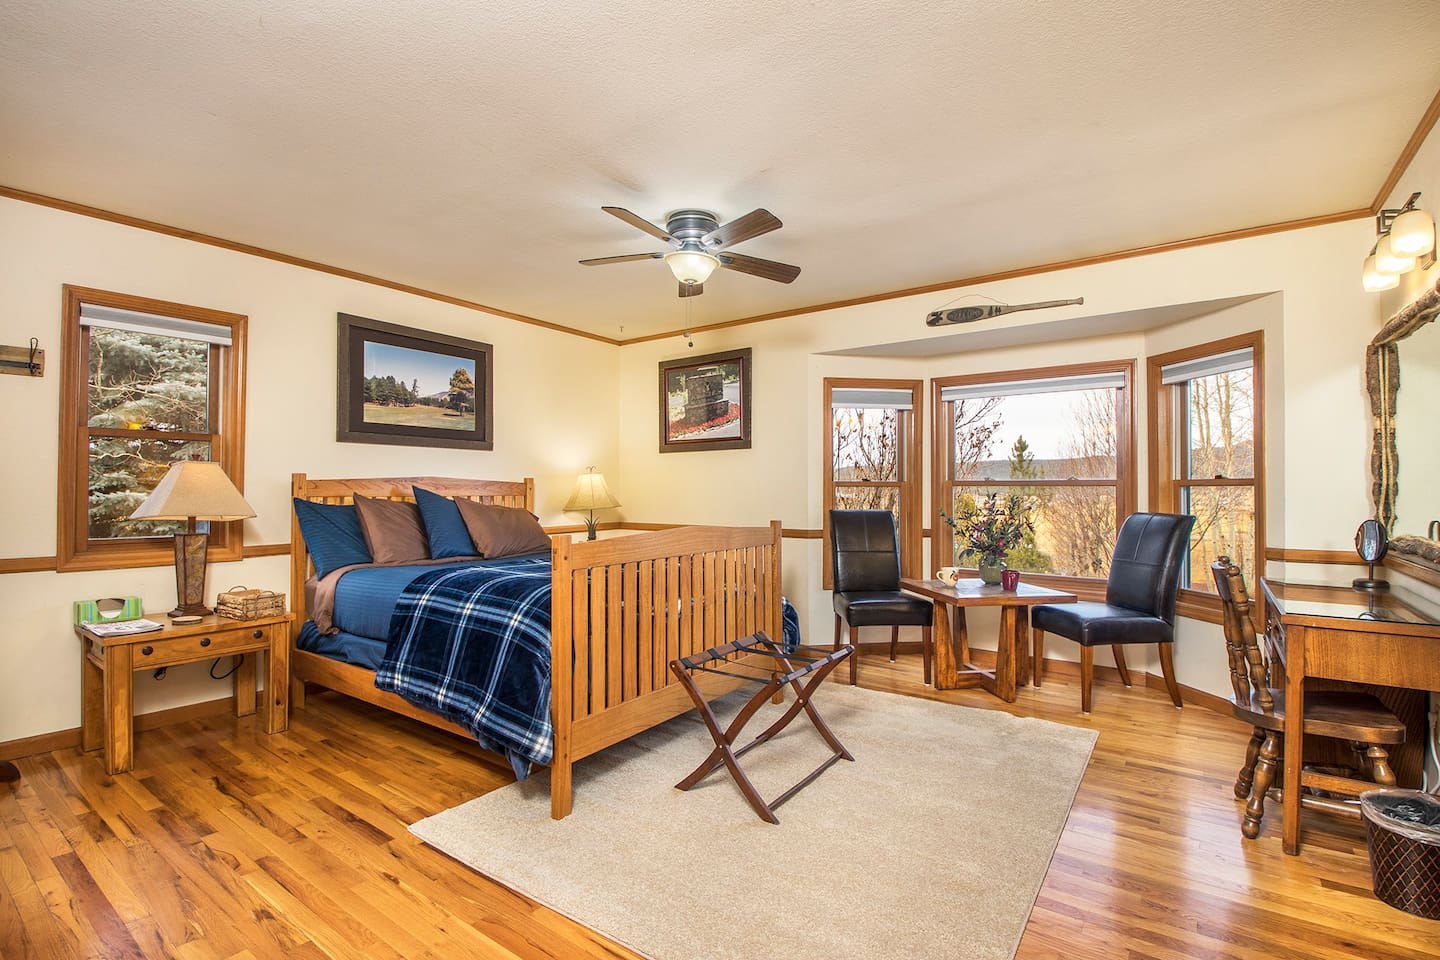 Whether you visit for work or play, you'll enjoy relaxing in our master suite with mountain views. You'll likely hear elk, deer or coyote in the evenings or early morning. Breathtaking views of the stars will encourage you to sit outside and gaze.